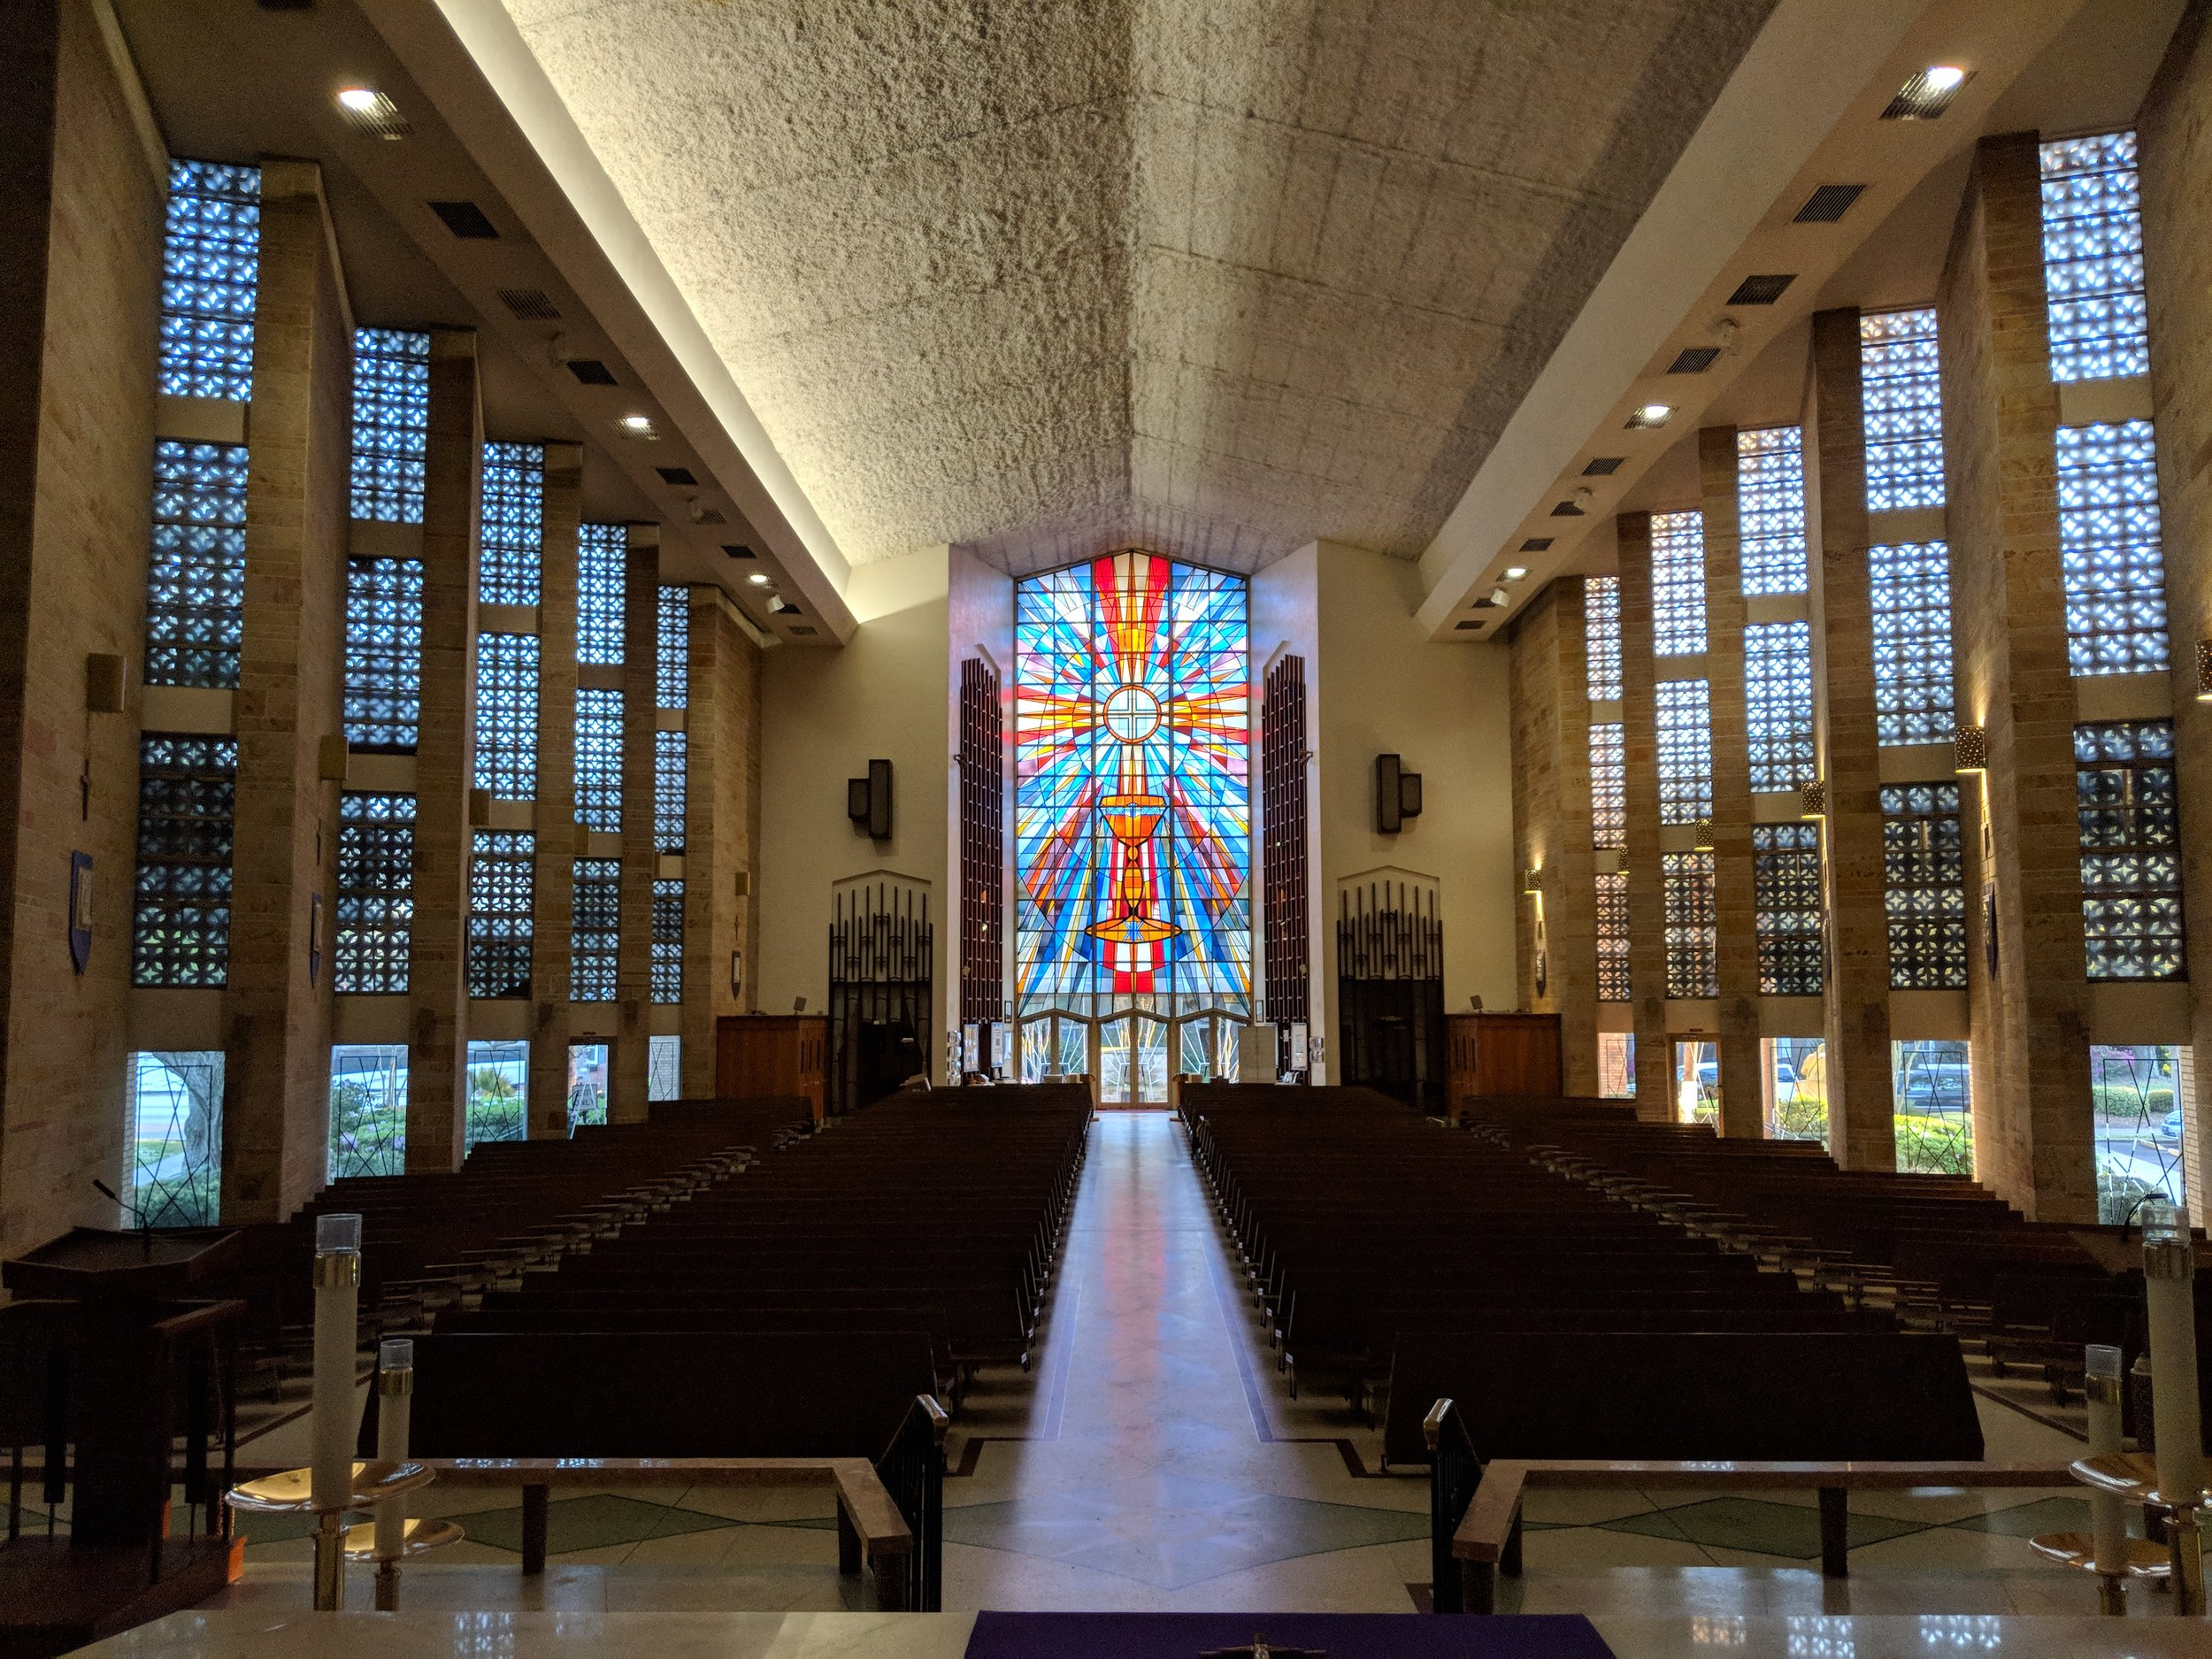 A view of the Nave from the Sanctuary. CAMM DT-200 speakers provide coverage in the Nave.